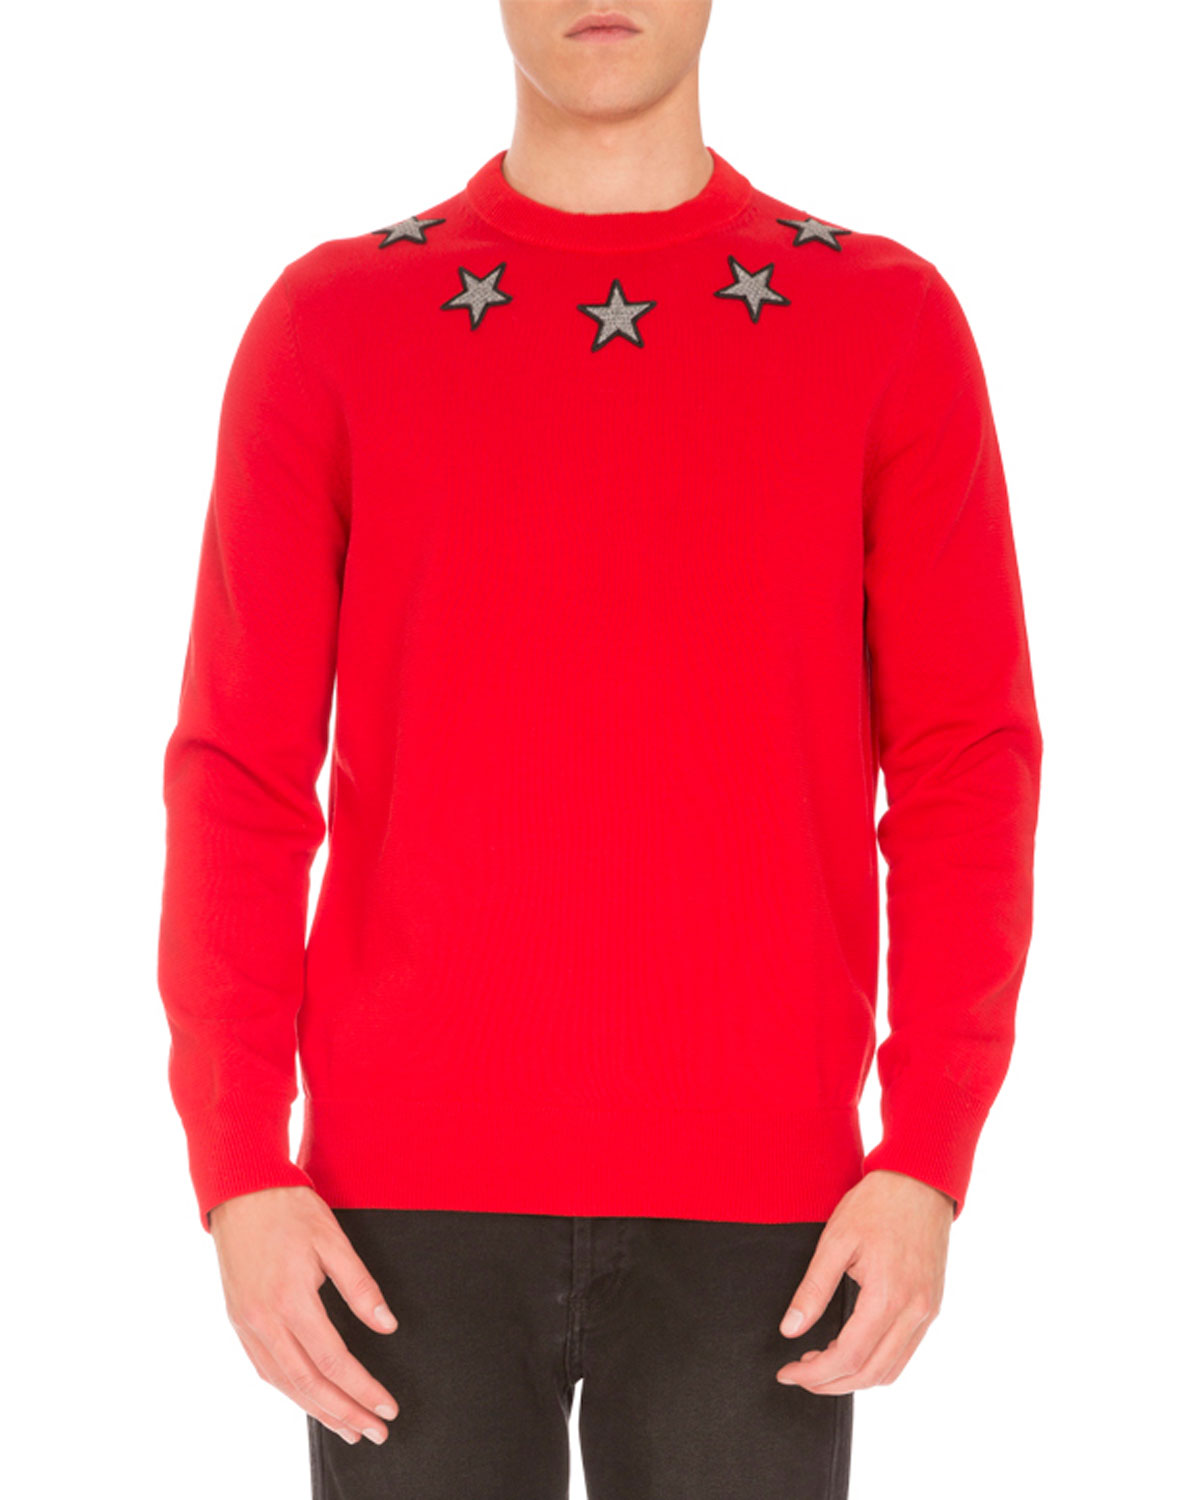 Givenchy Star-Embroidered Crewneck Sweater dc6229ced